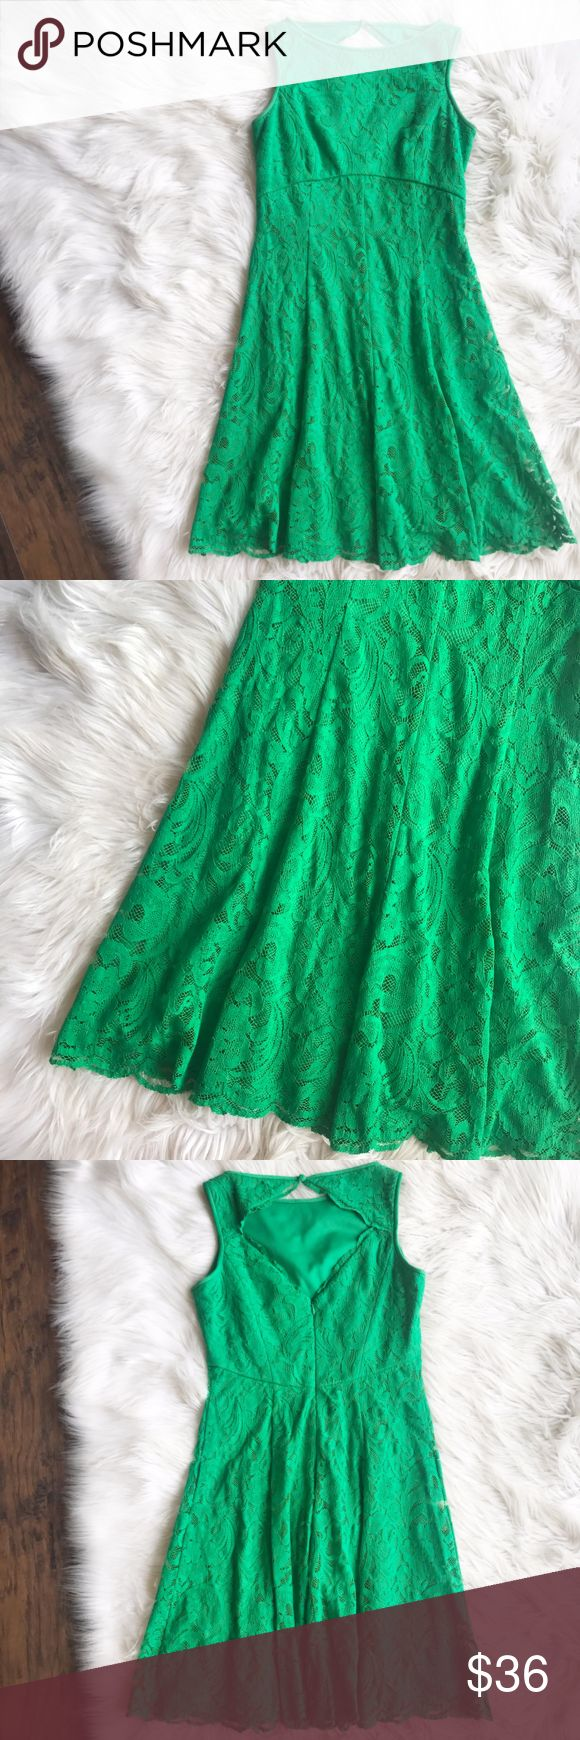 Maggy London Kelly Green Lace Dress Excellent condition lace dress by Maggy London. Flattering empire waist line, open back detailing. Fully lined. Perfect dress for a wedding or other special occasion. Size 2. Measurements to come. Maggy London Dresses